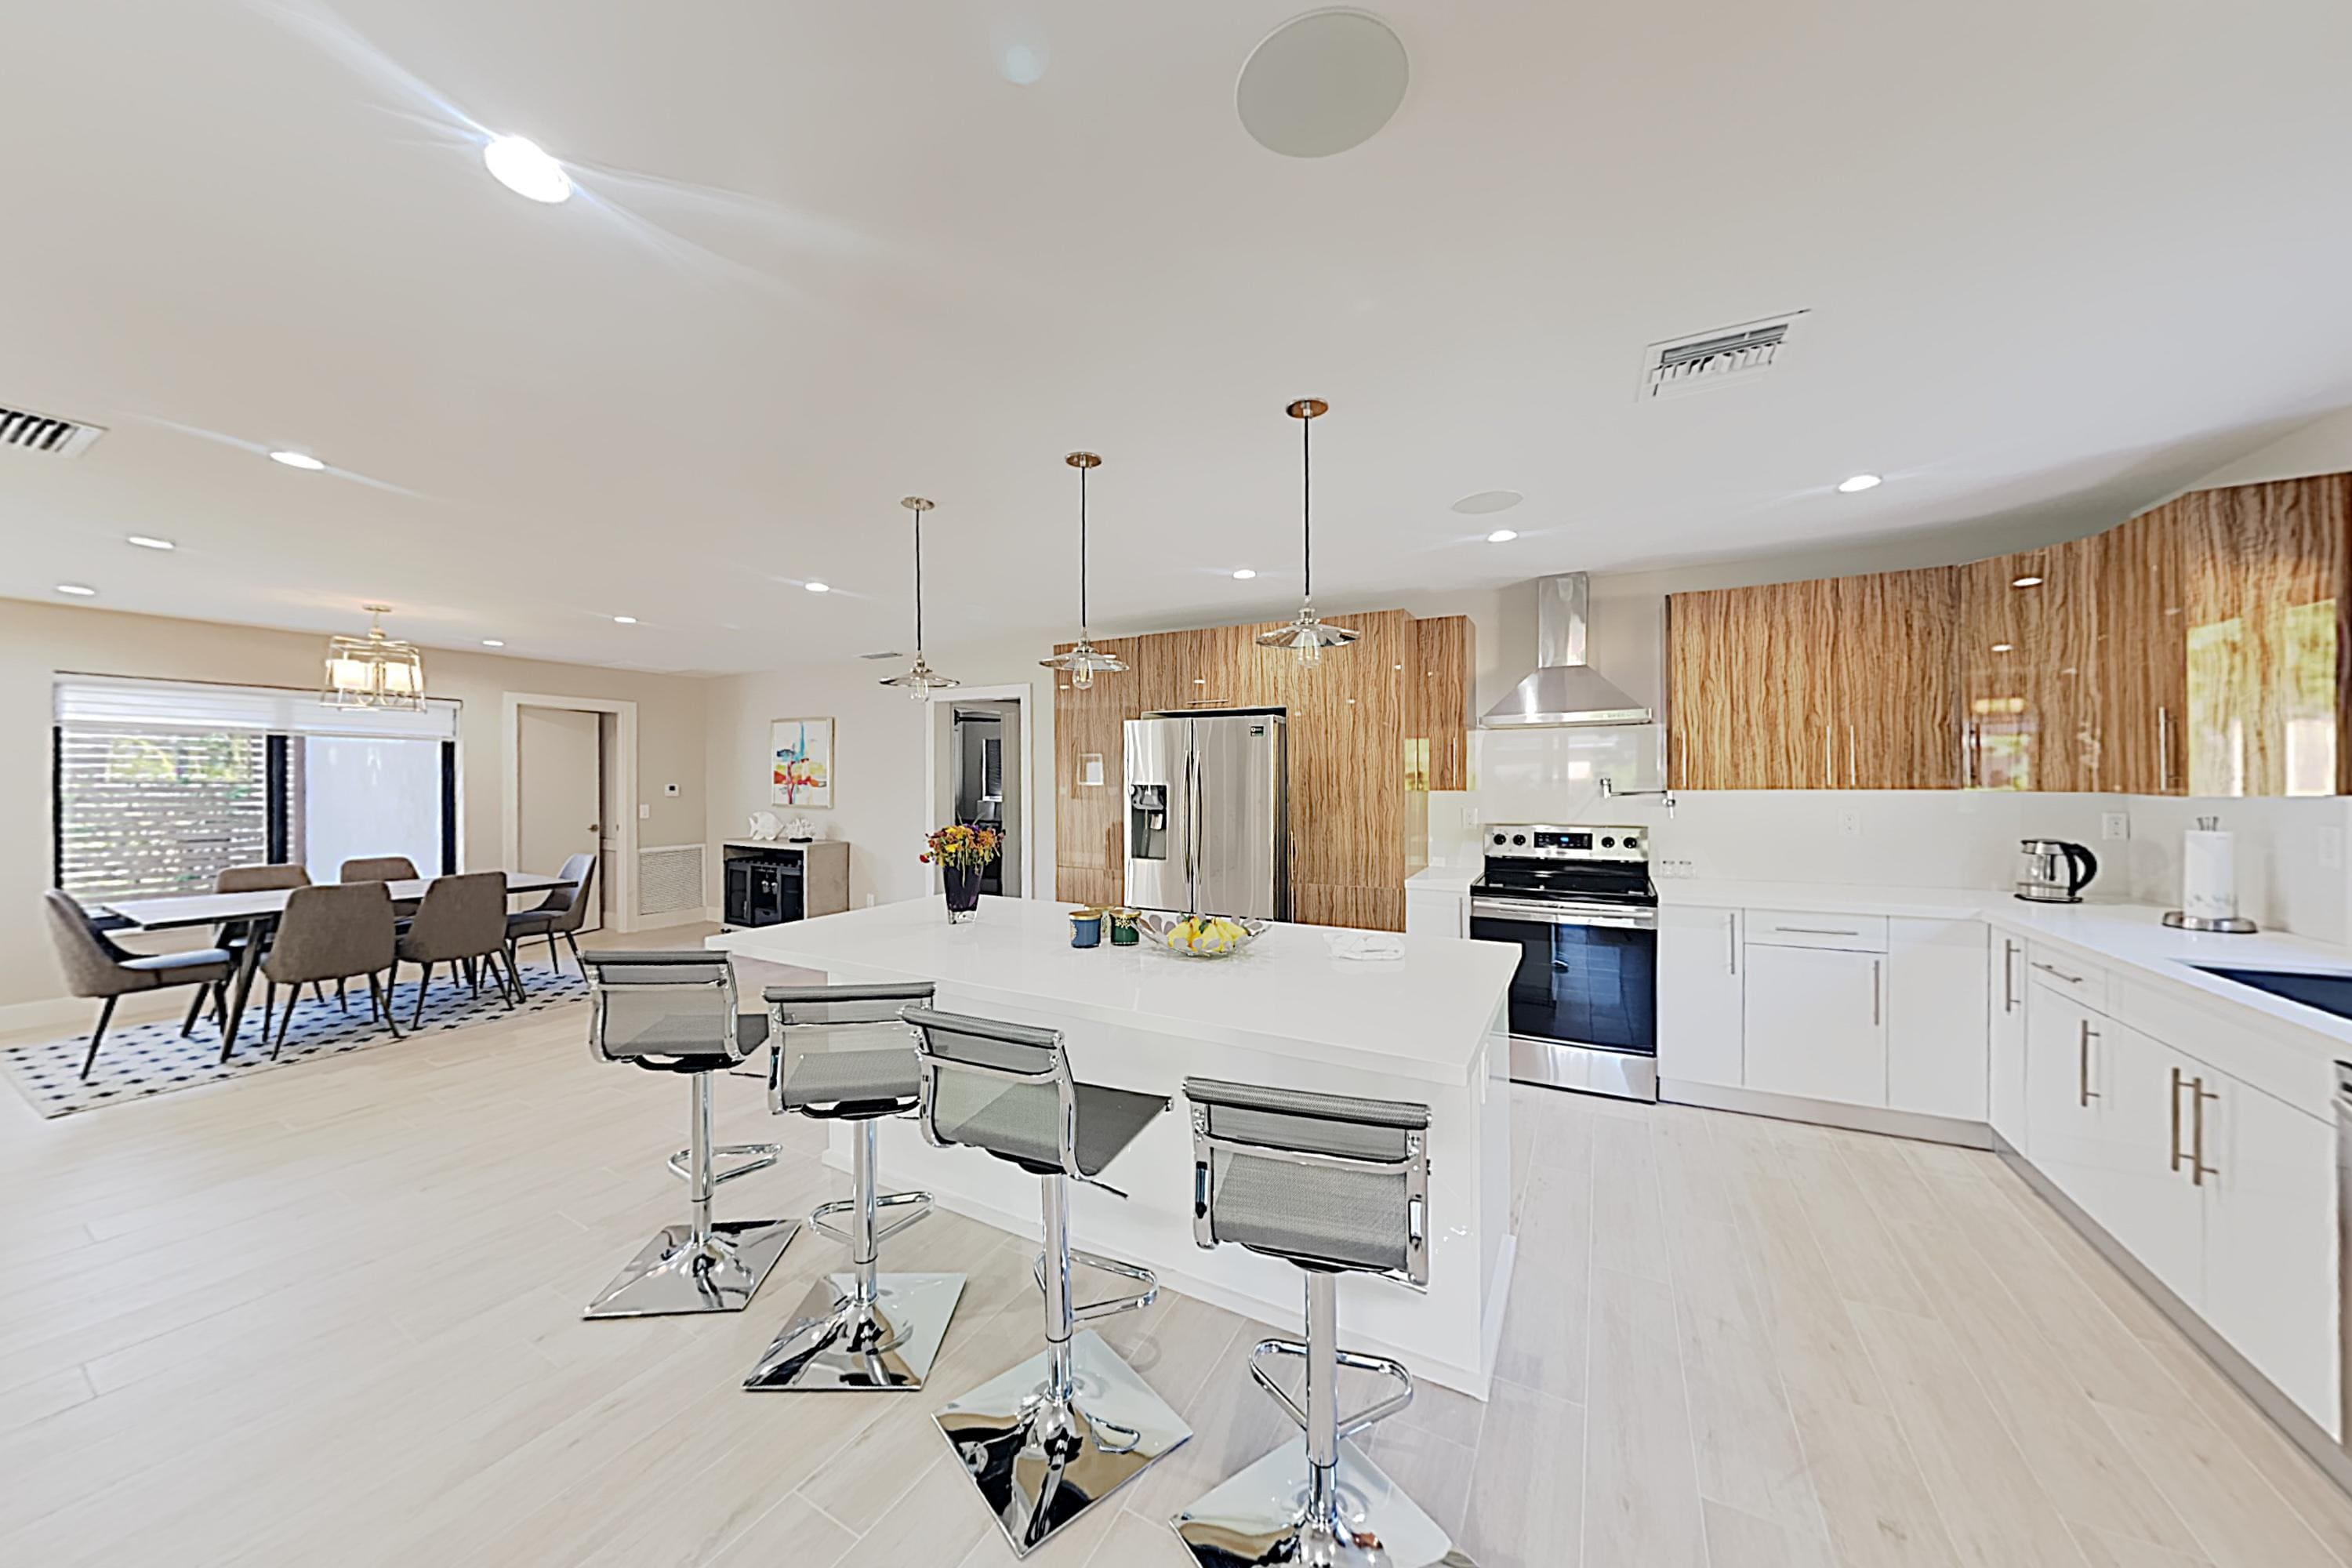 The expansive center island in the kitchen seats 4.